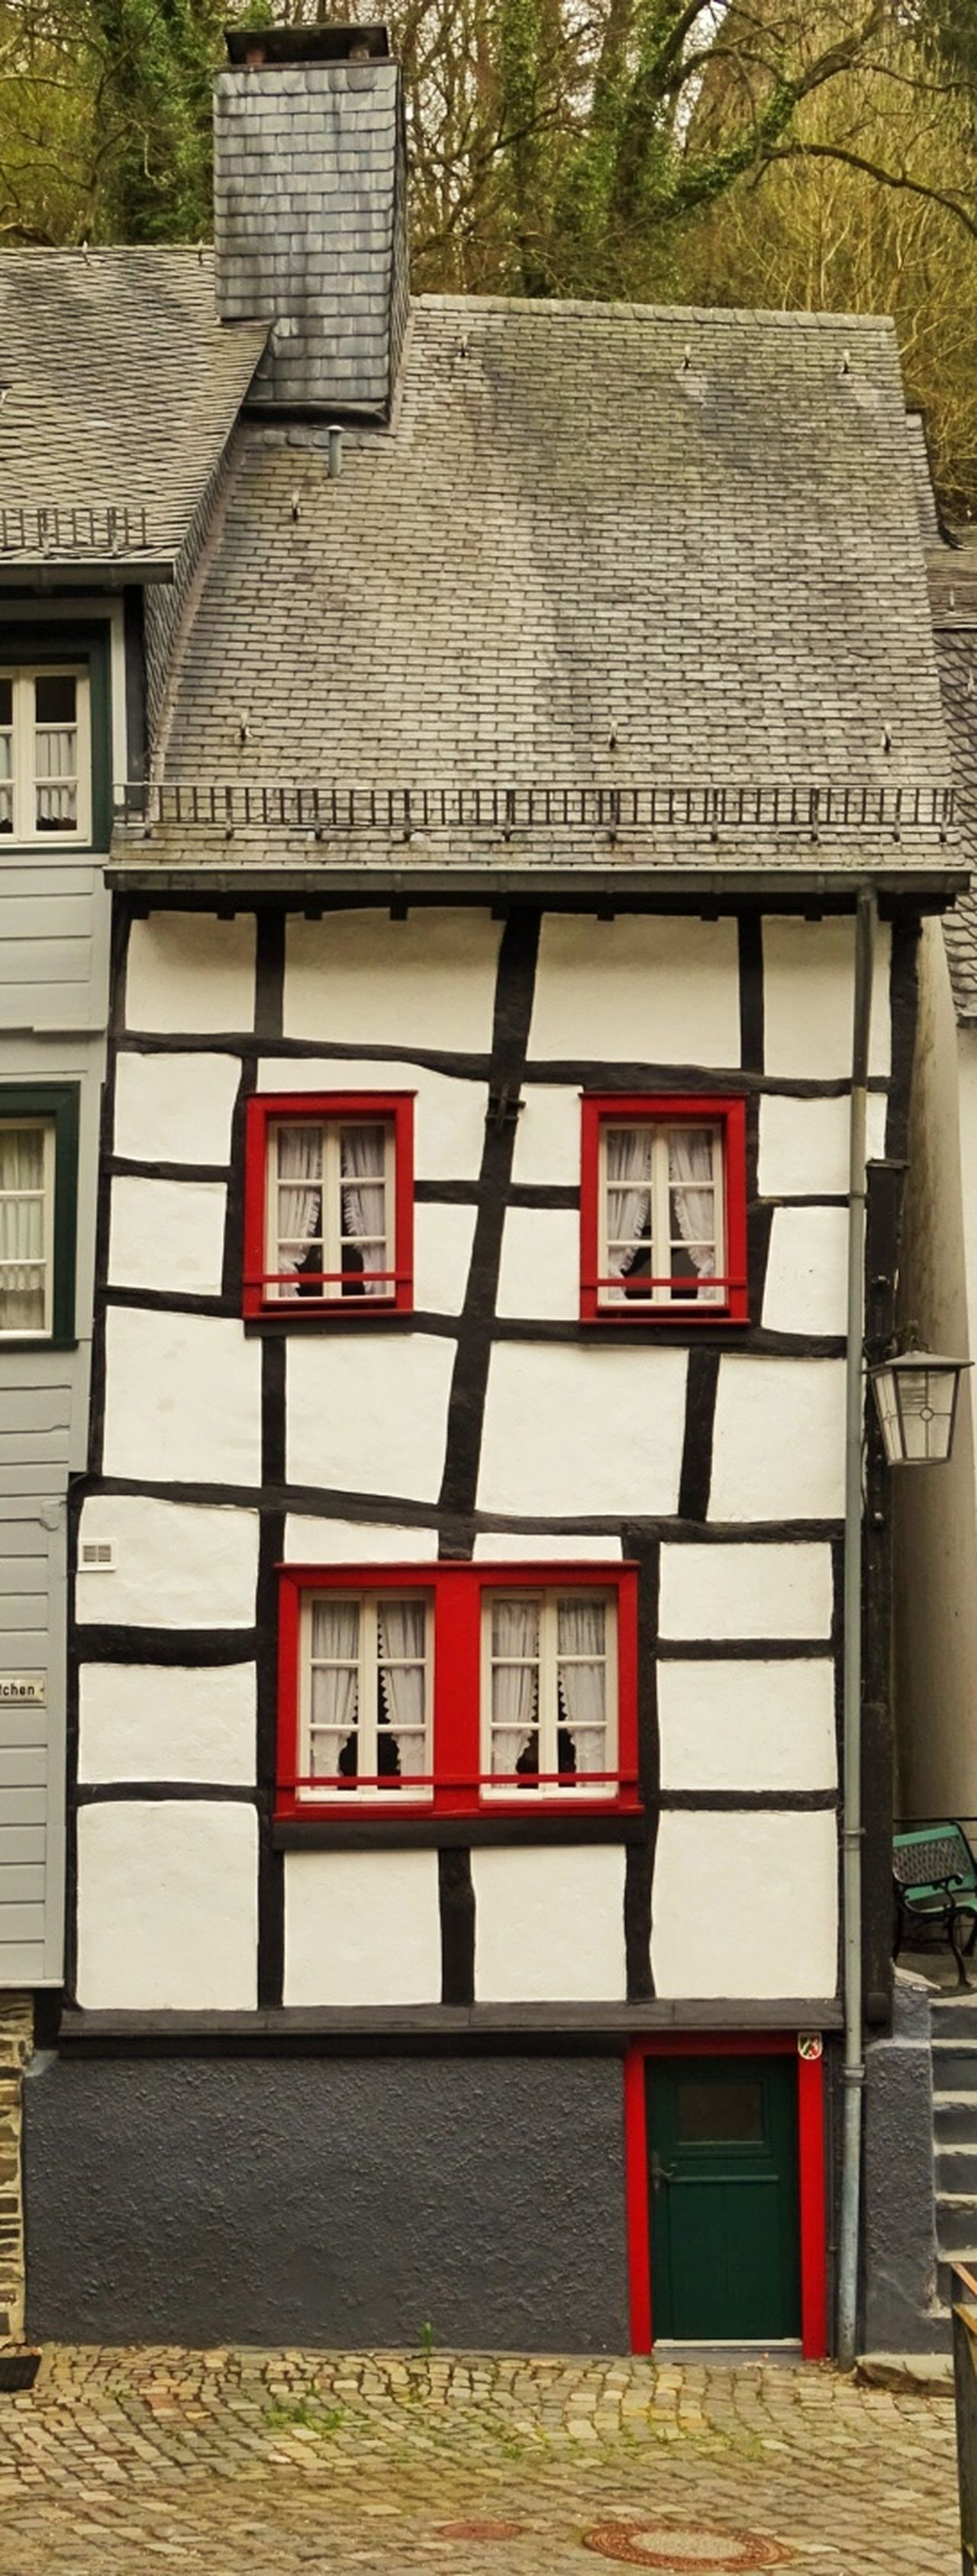 Half-timbered Houses Half Timbered Half-timbered House Fachwerkfassade Built Structure Architecture Building Exterior No People Outdoors Old Buildings Old Architecture Travel Destinations Architecture Romantisch Romântico♥♥ Romantic Romantic❤ Old German House Old Germany Old Houses Romantico Beautiful Buildings Residential Building Romantic Place Wanderlust